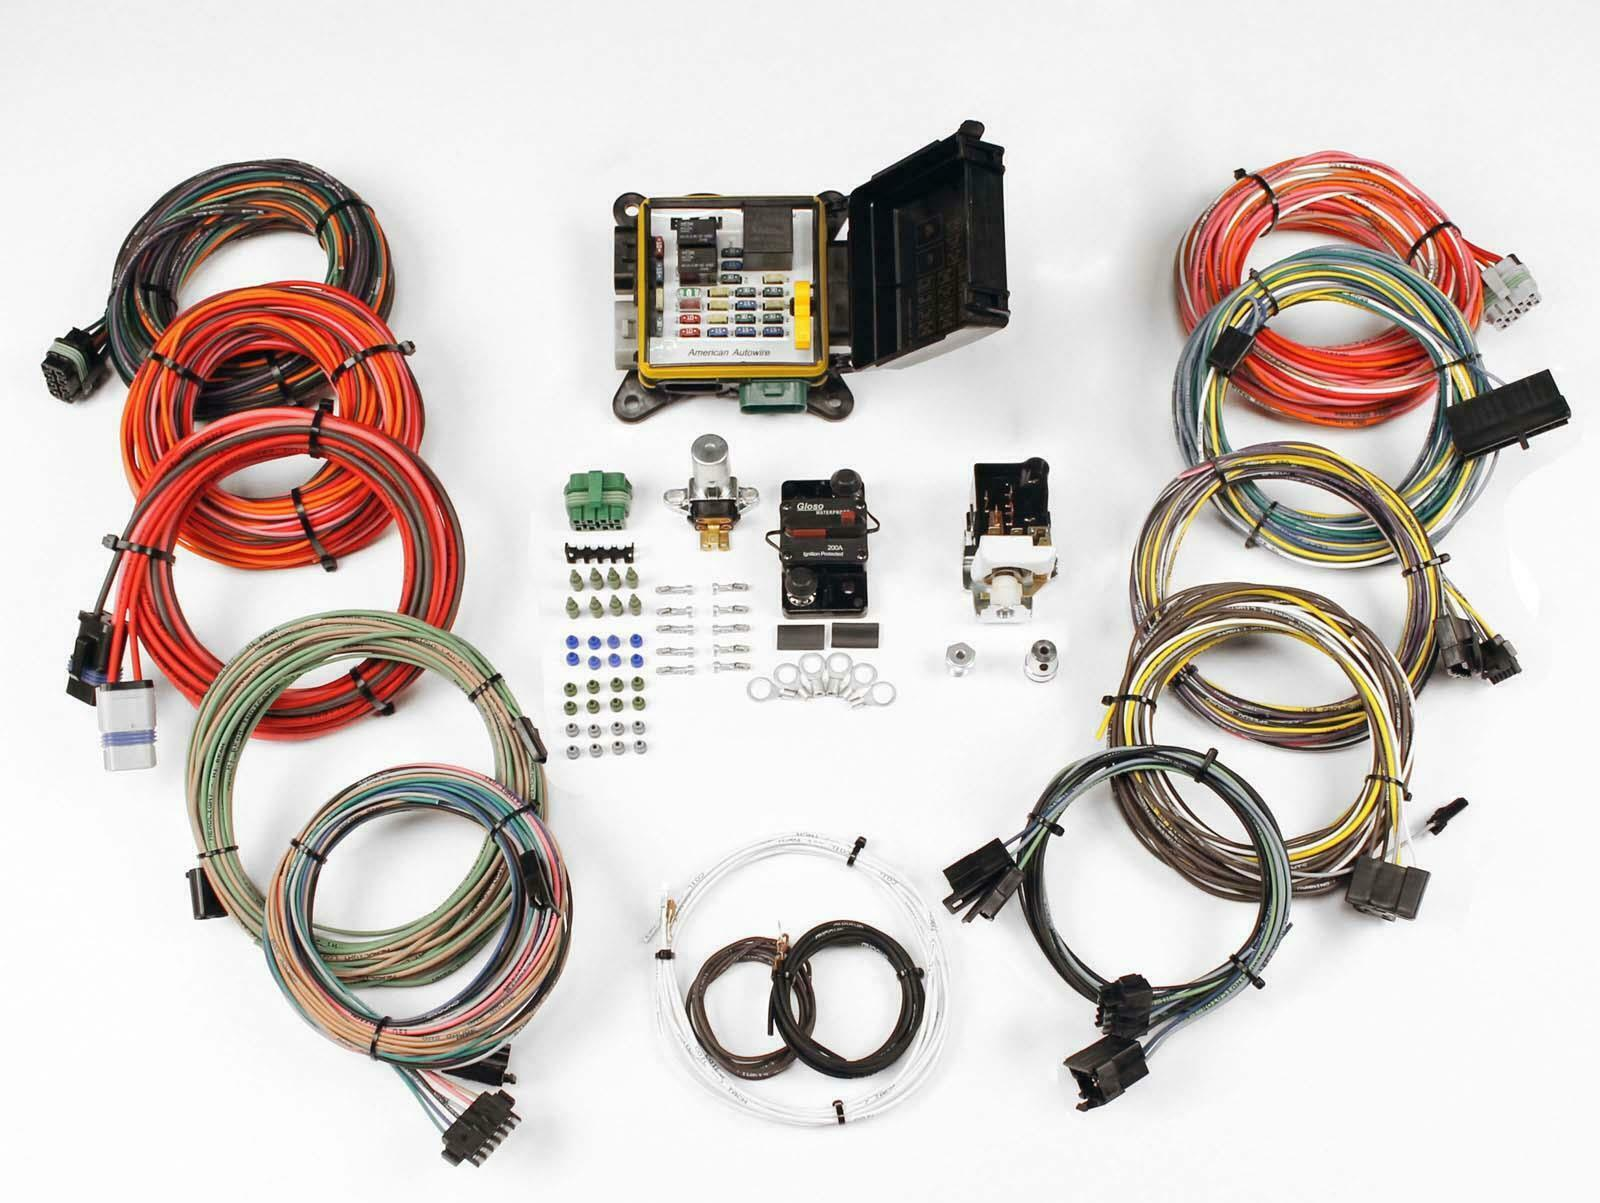 American Auto Wire 510564 Severe Duty Universal Wiring Harness Kit Kits 1 Of 1only 5 Available